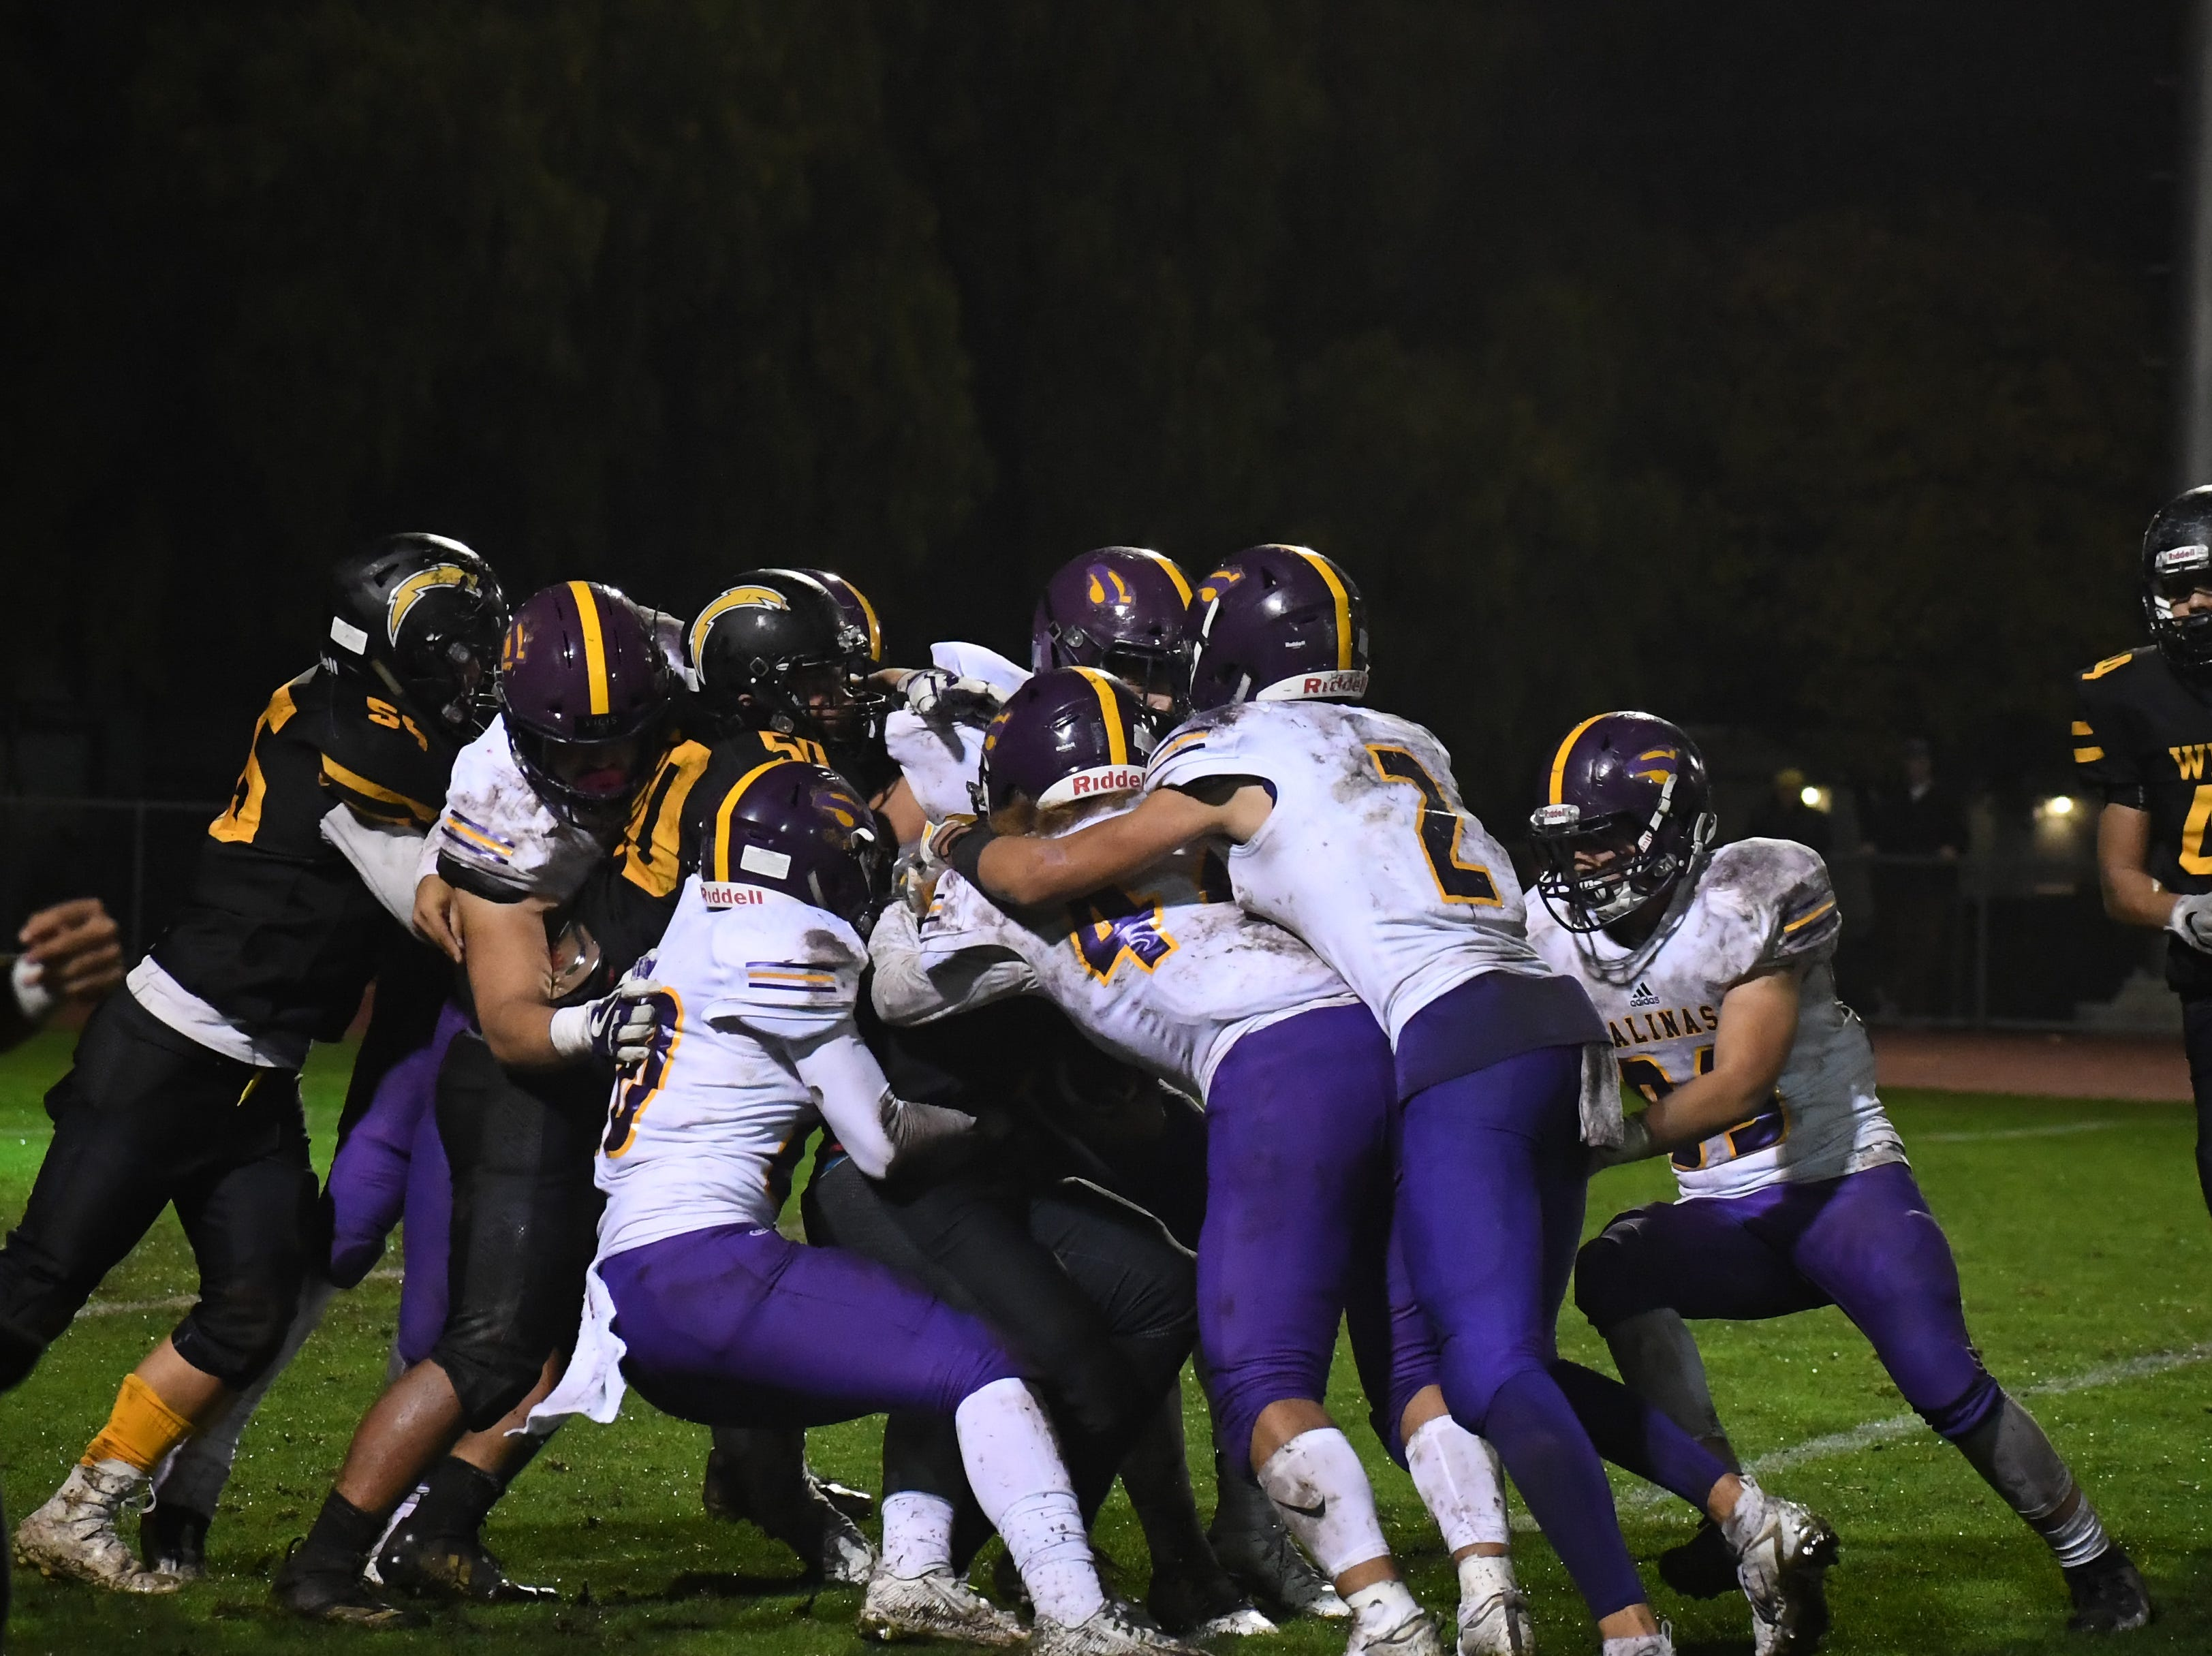 The Salinas defense rallies to a ball carrier.